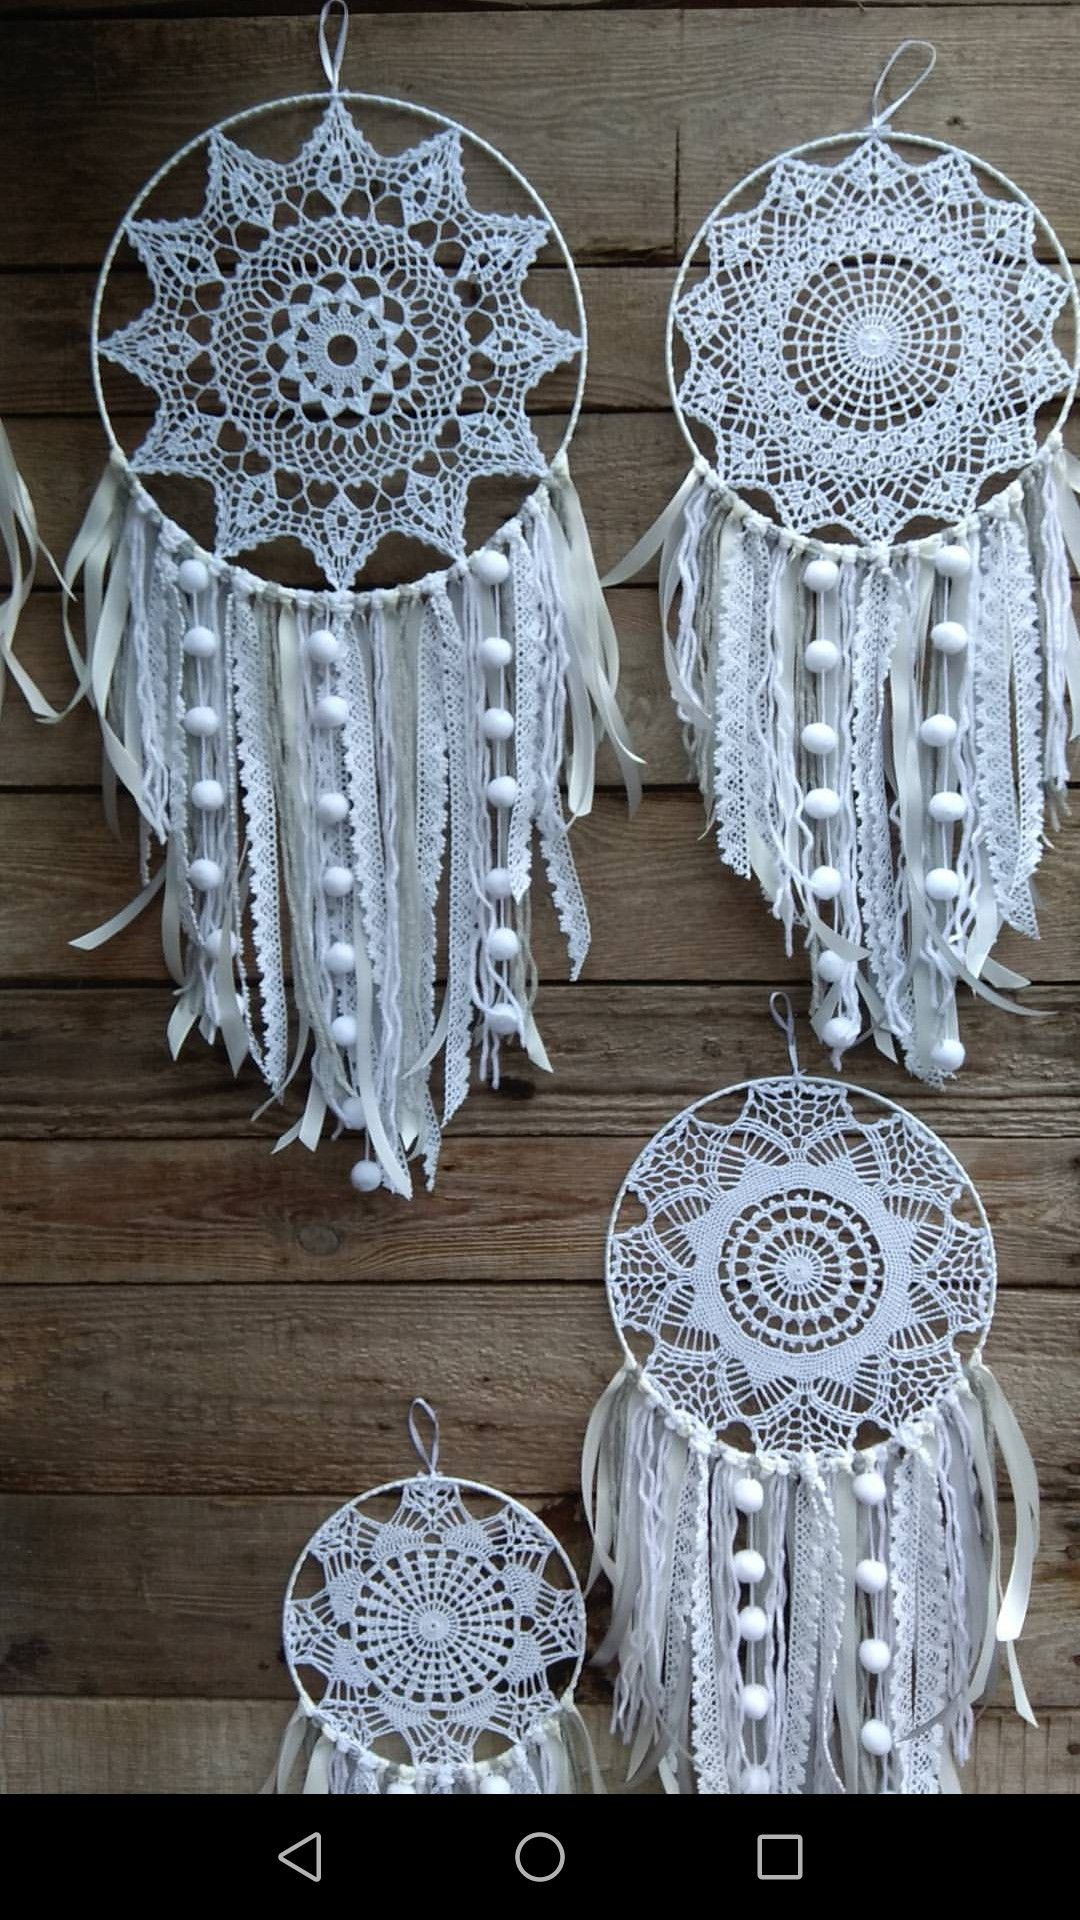 Dream Catcher Decor, Dreamcatchers, Coachella, Rustic Wedding, Christmas Gifts, Happiness,